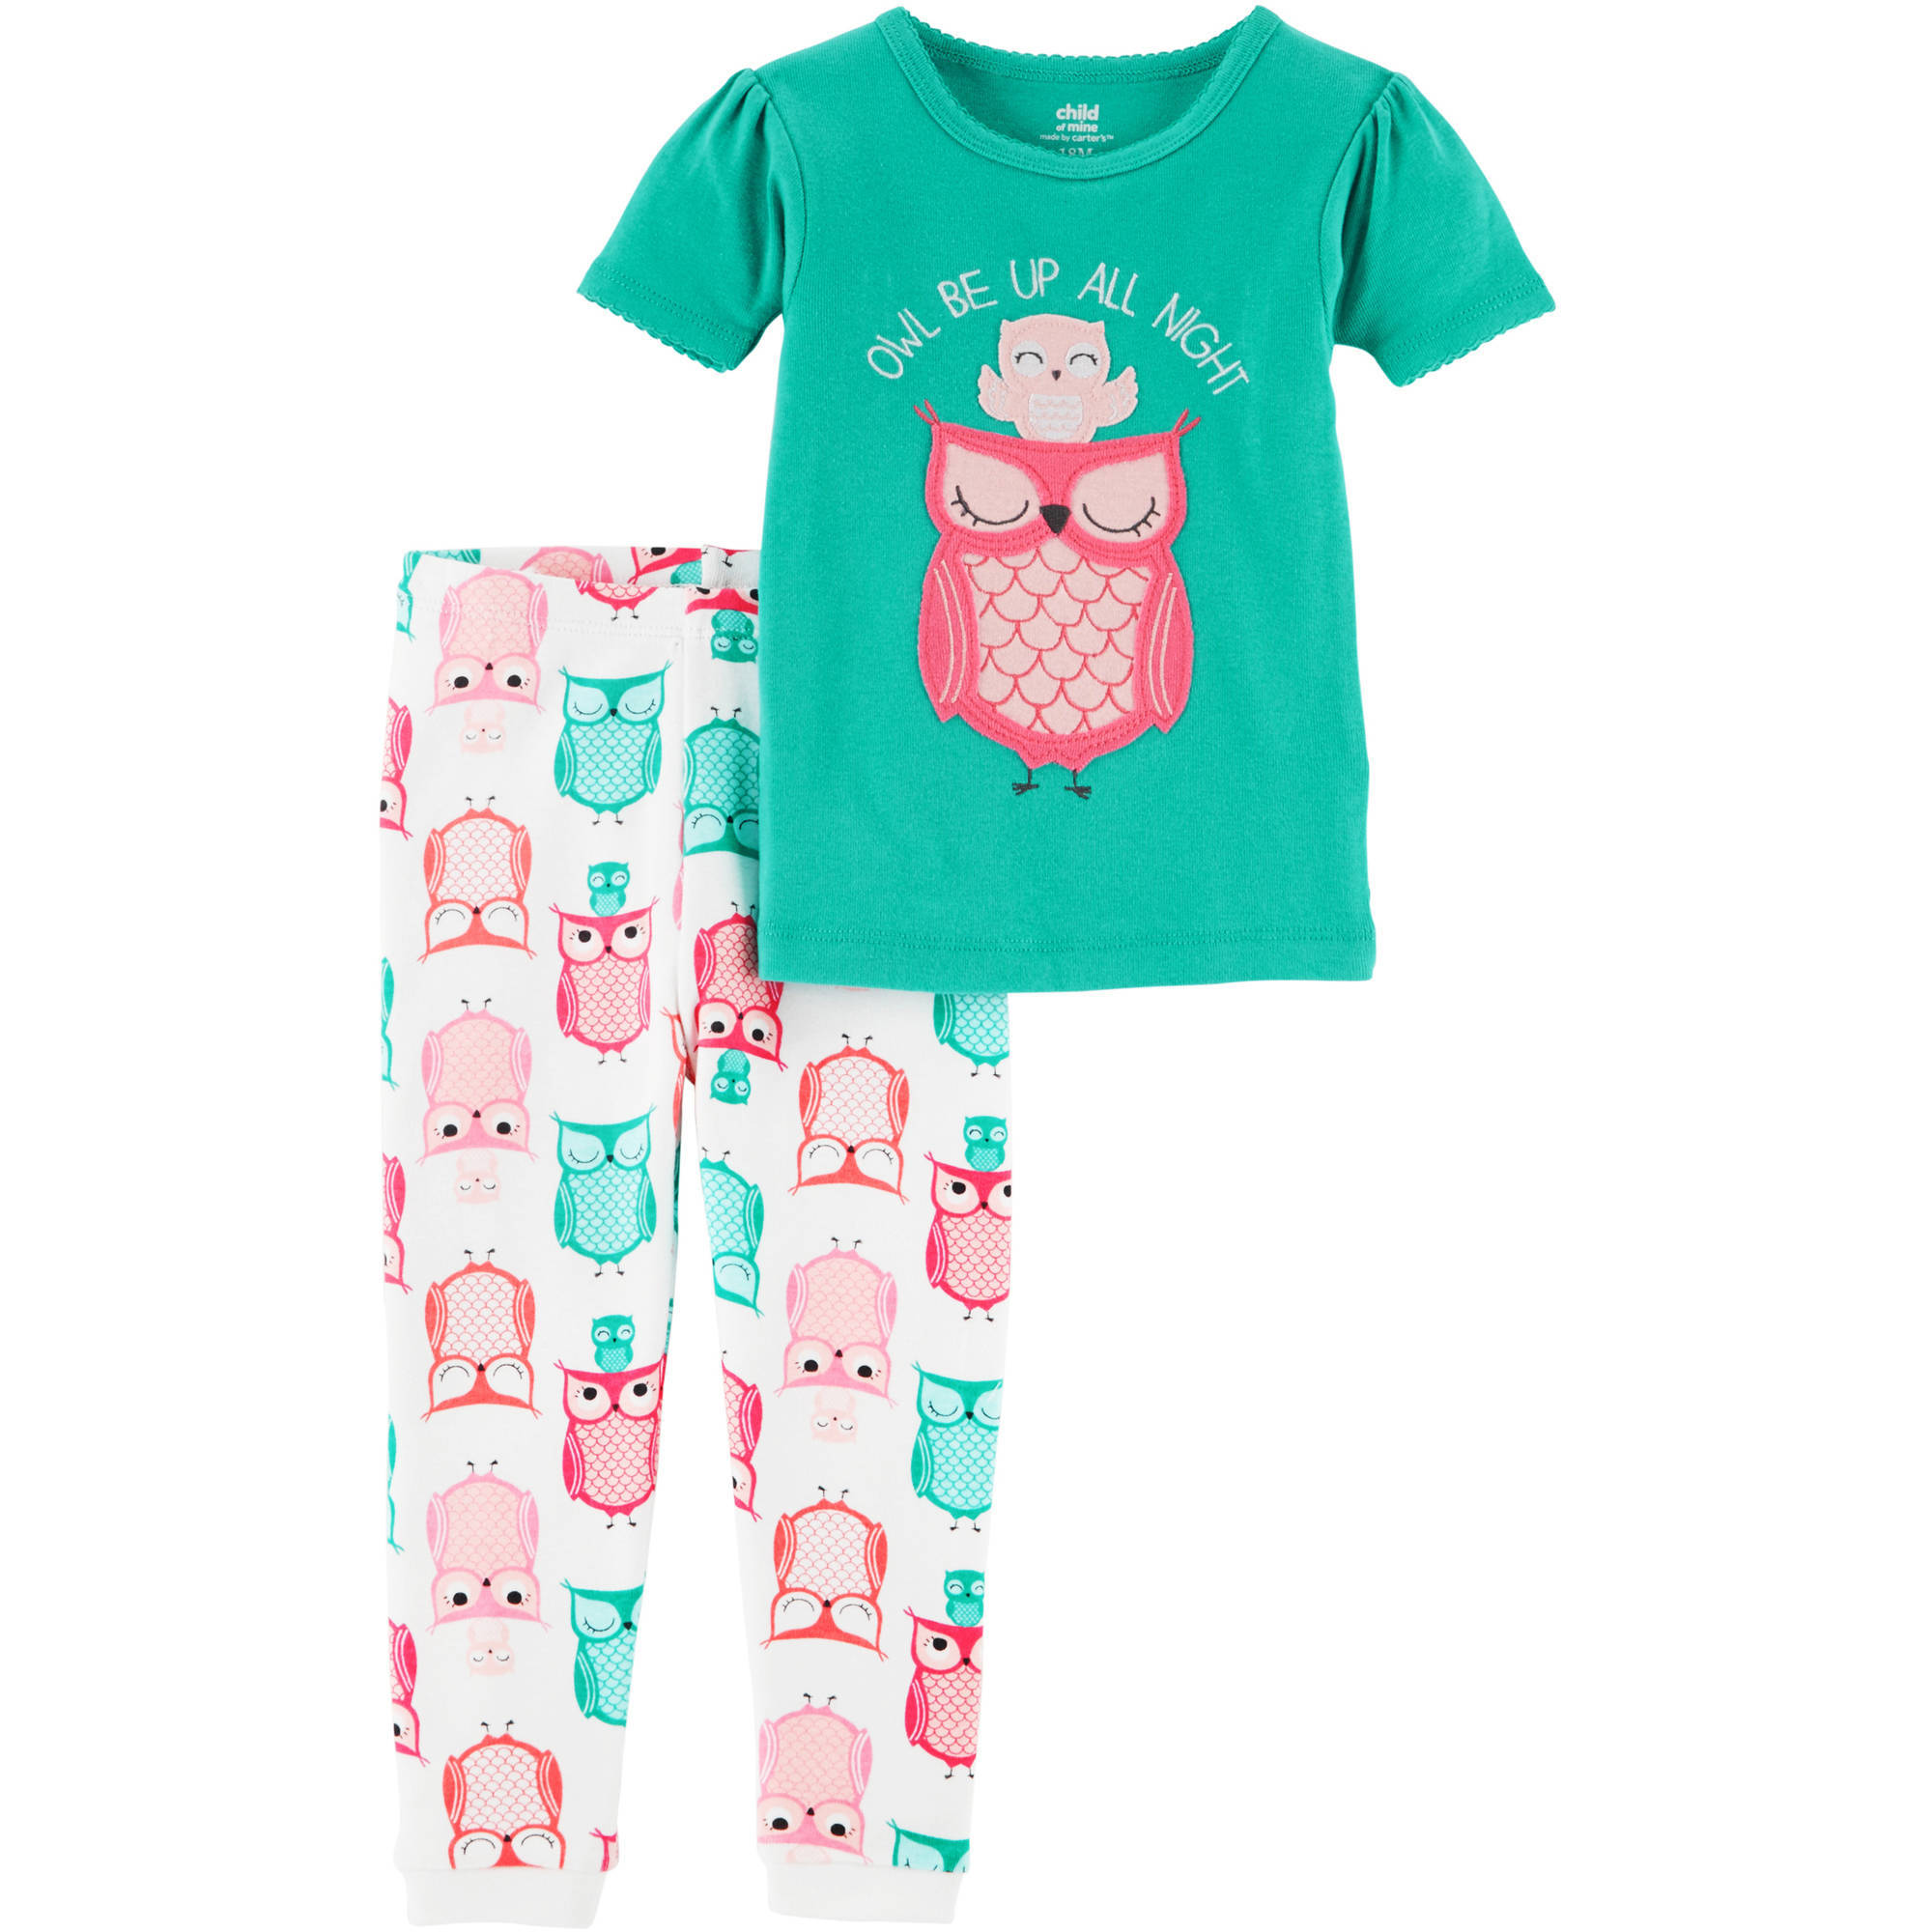 a99827a88 Child of Mine by Carter s - Baby Toddler Girl 2 Piece Cotton Pajama ...